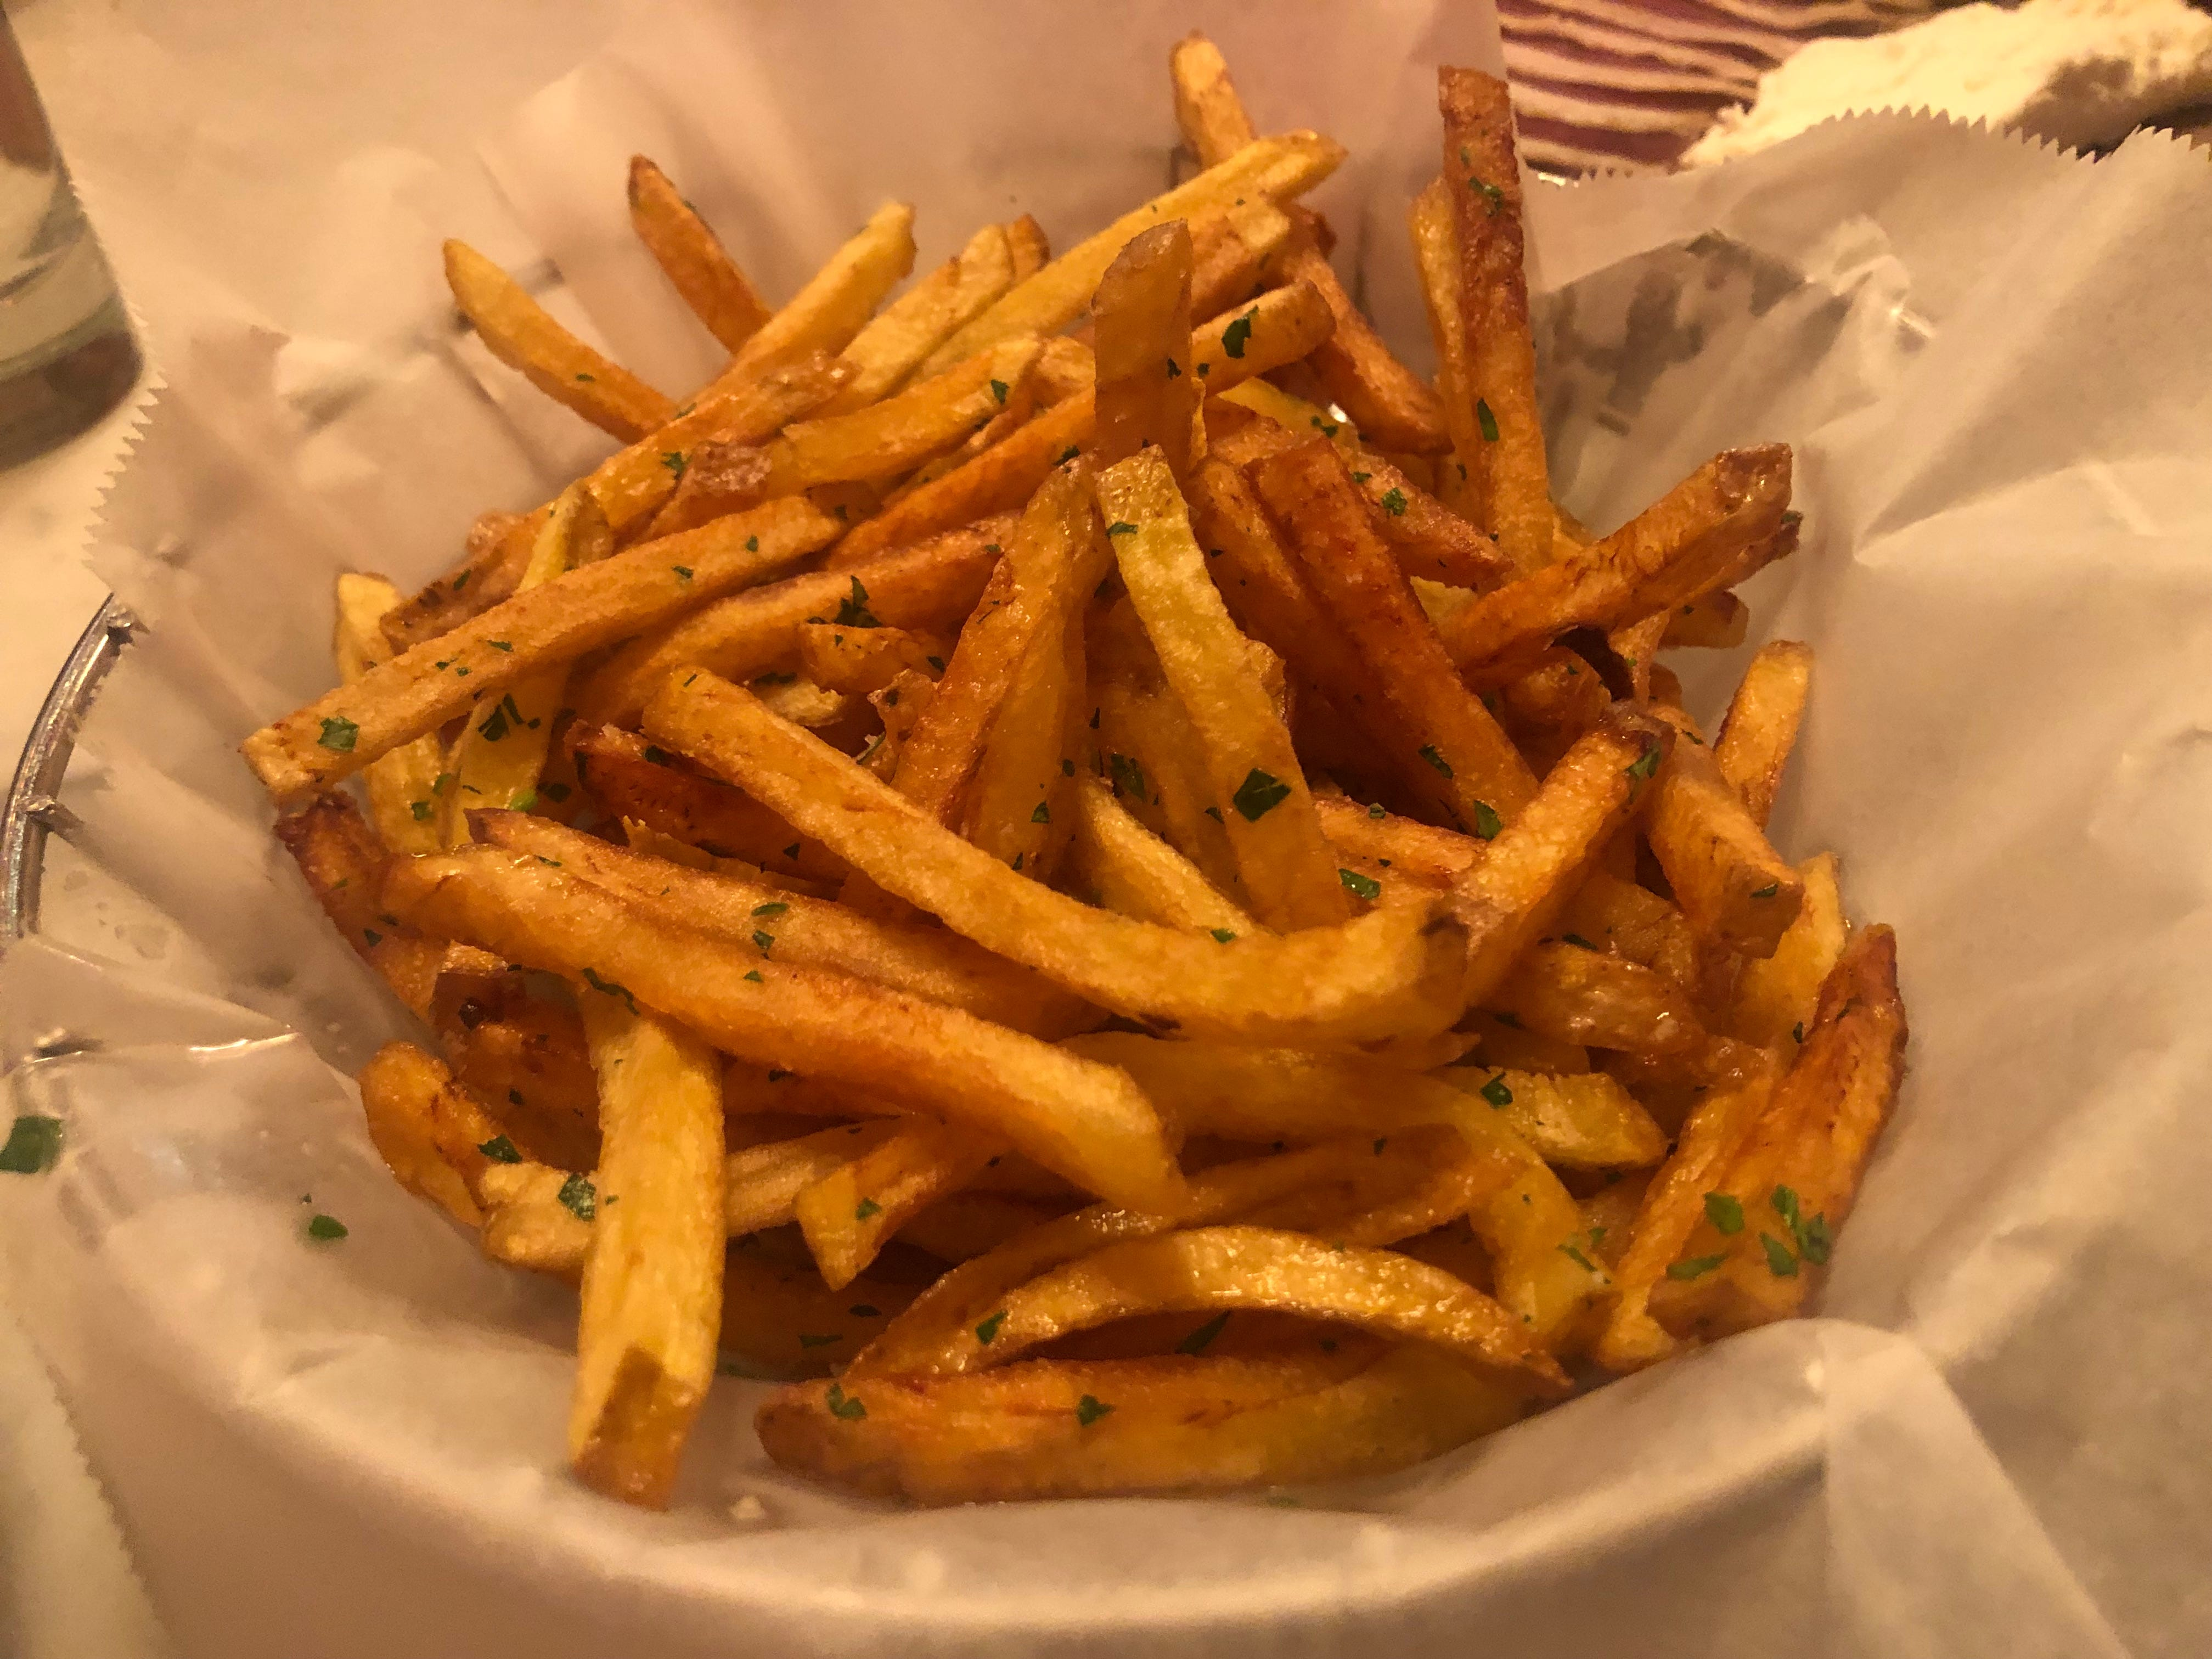 Fries with garlic butter and parsley from Cowan's Public.